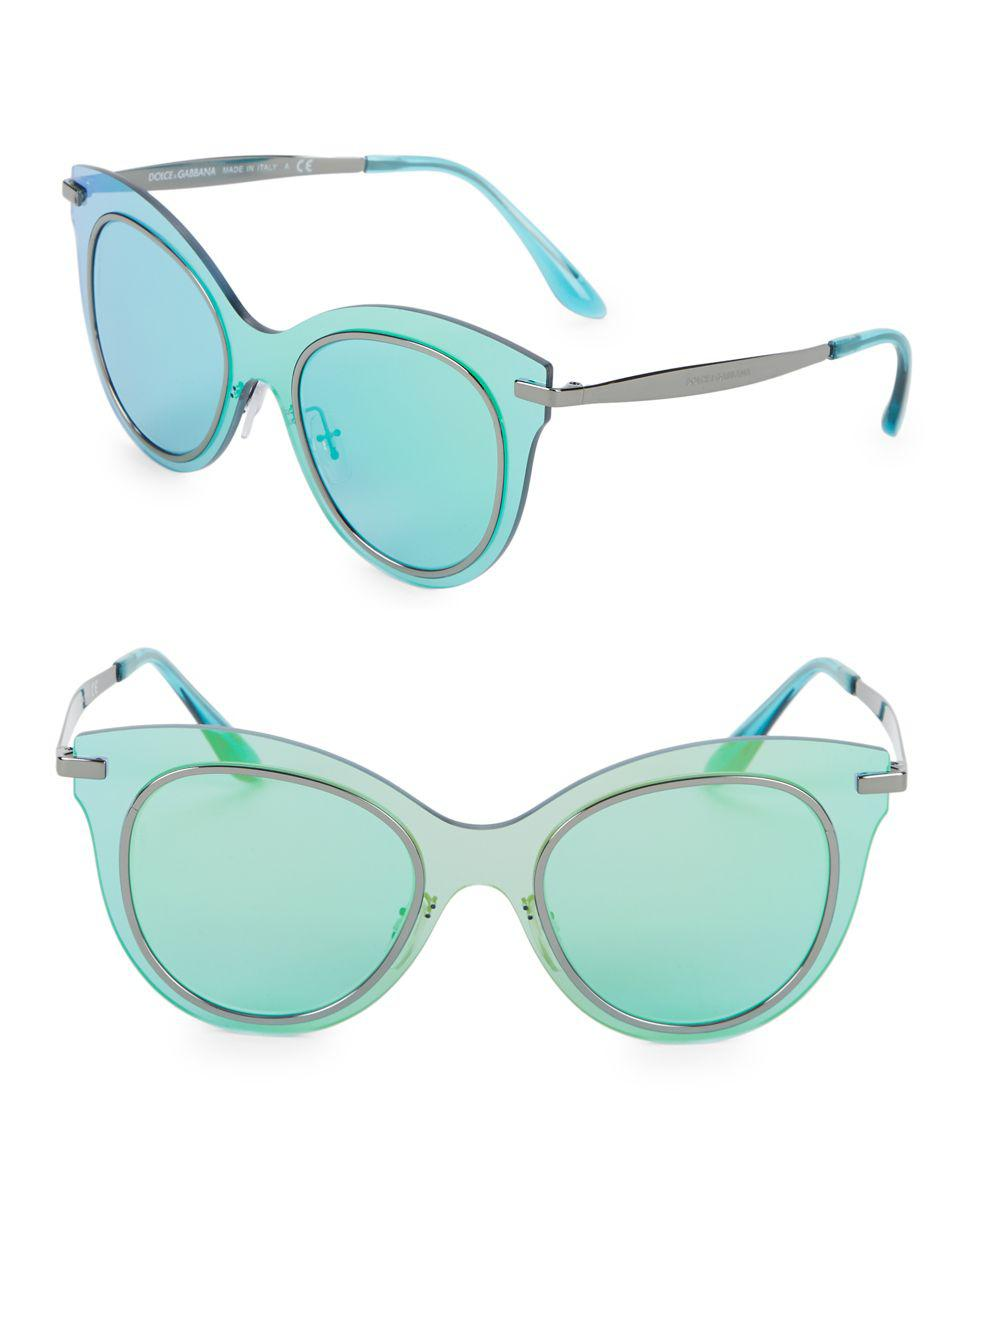 aad0d0d60ec Dolce   Gabbana 51mm Opalescent Round Sunglasses in Blue - Lyst